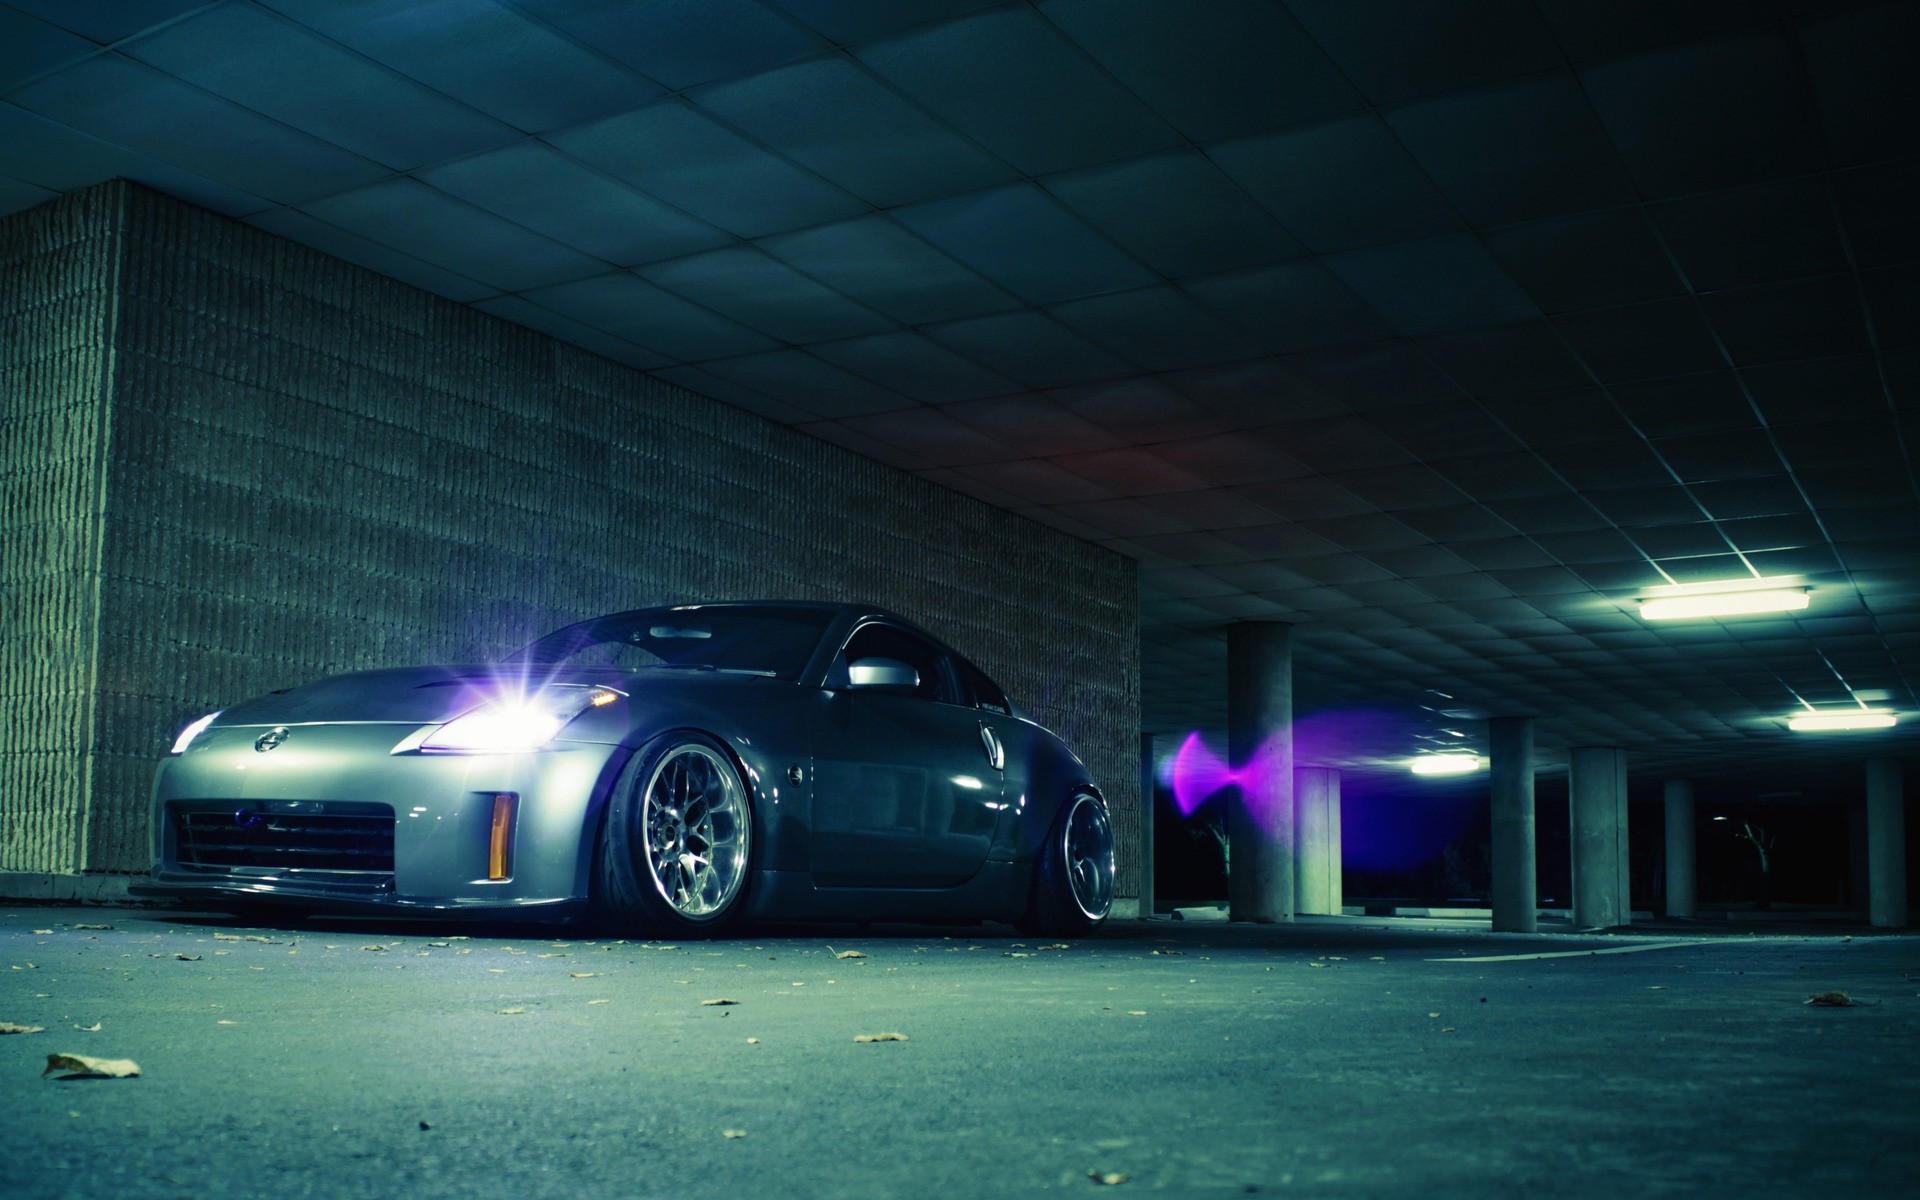 350z wallpaper high resolution (69+ images)